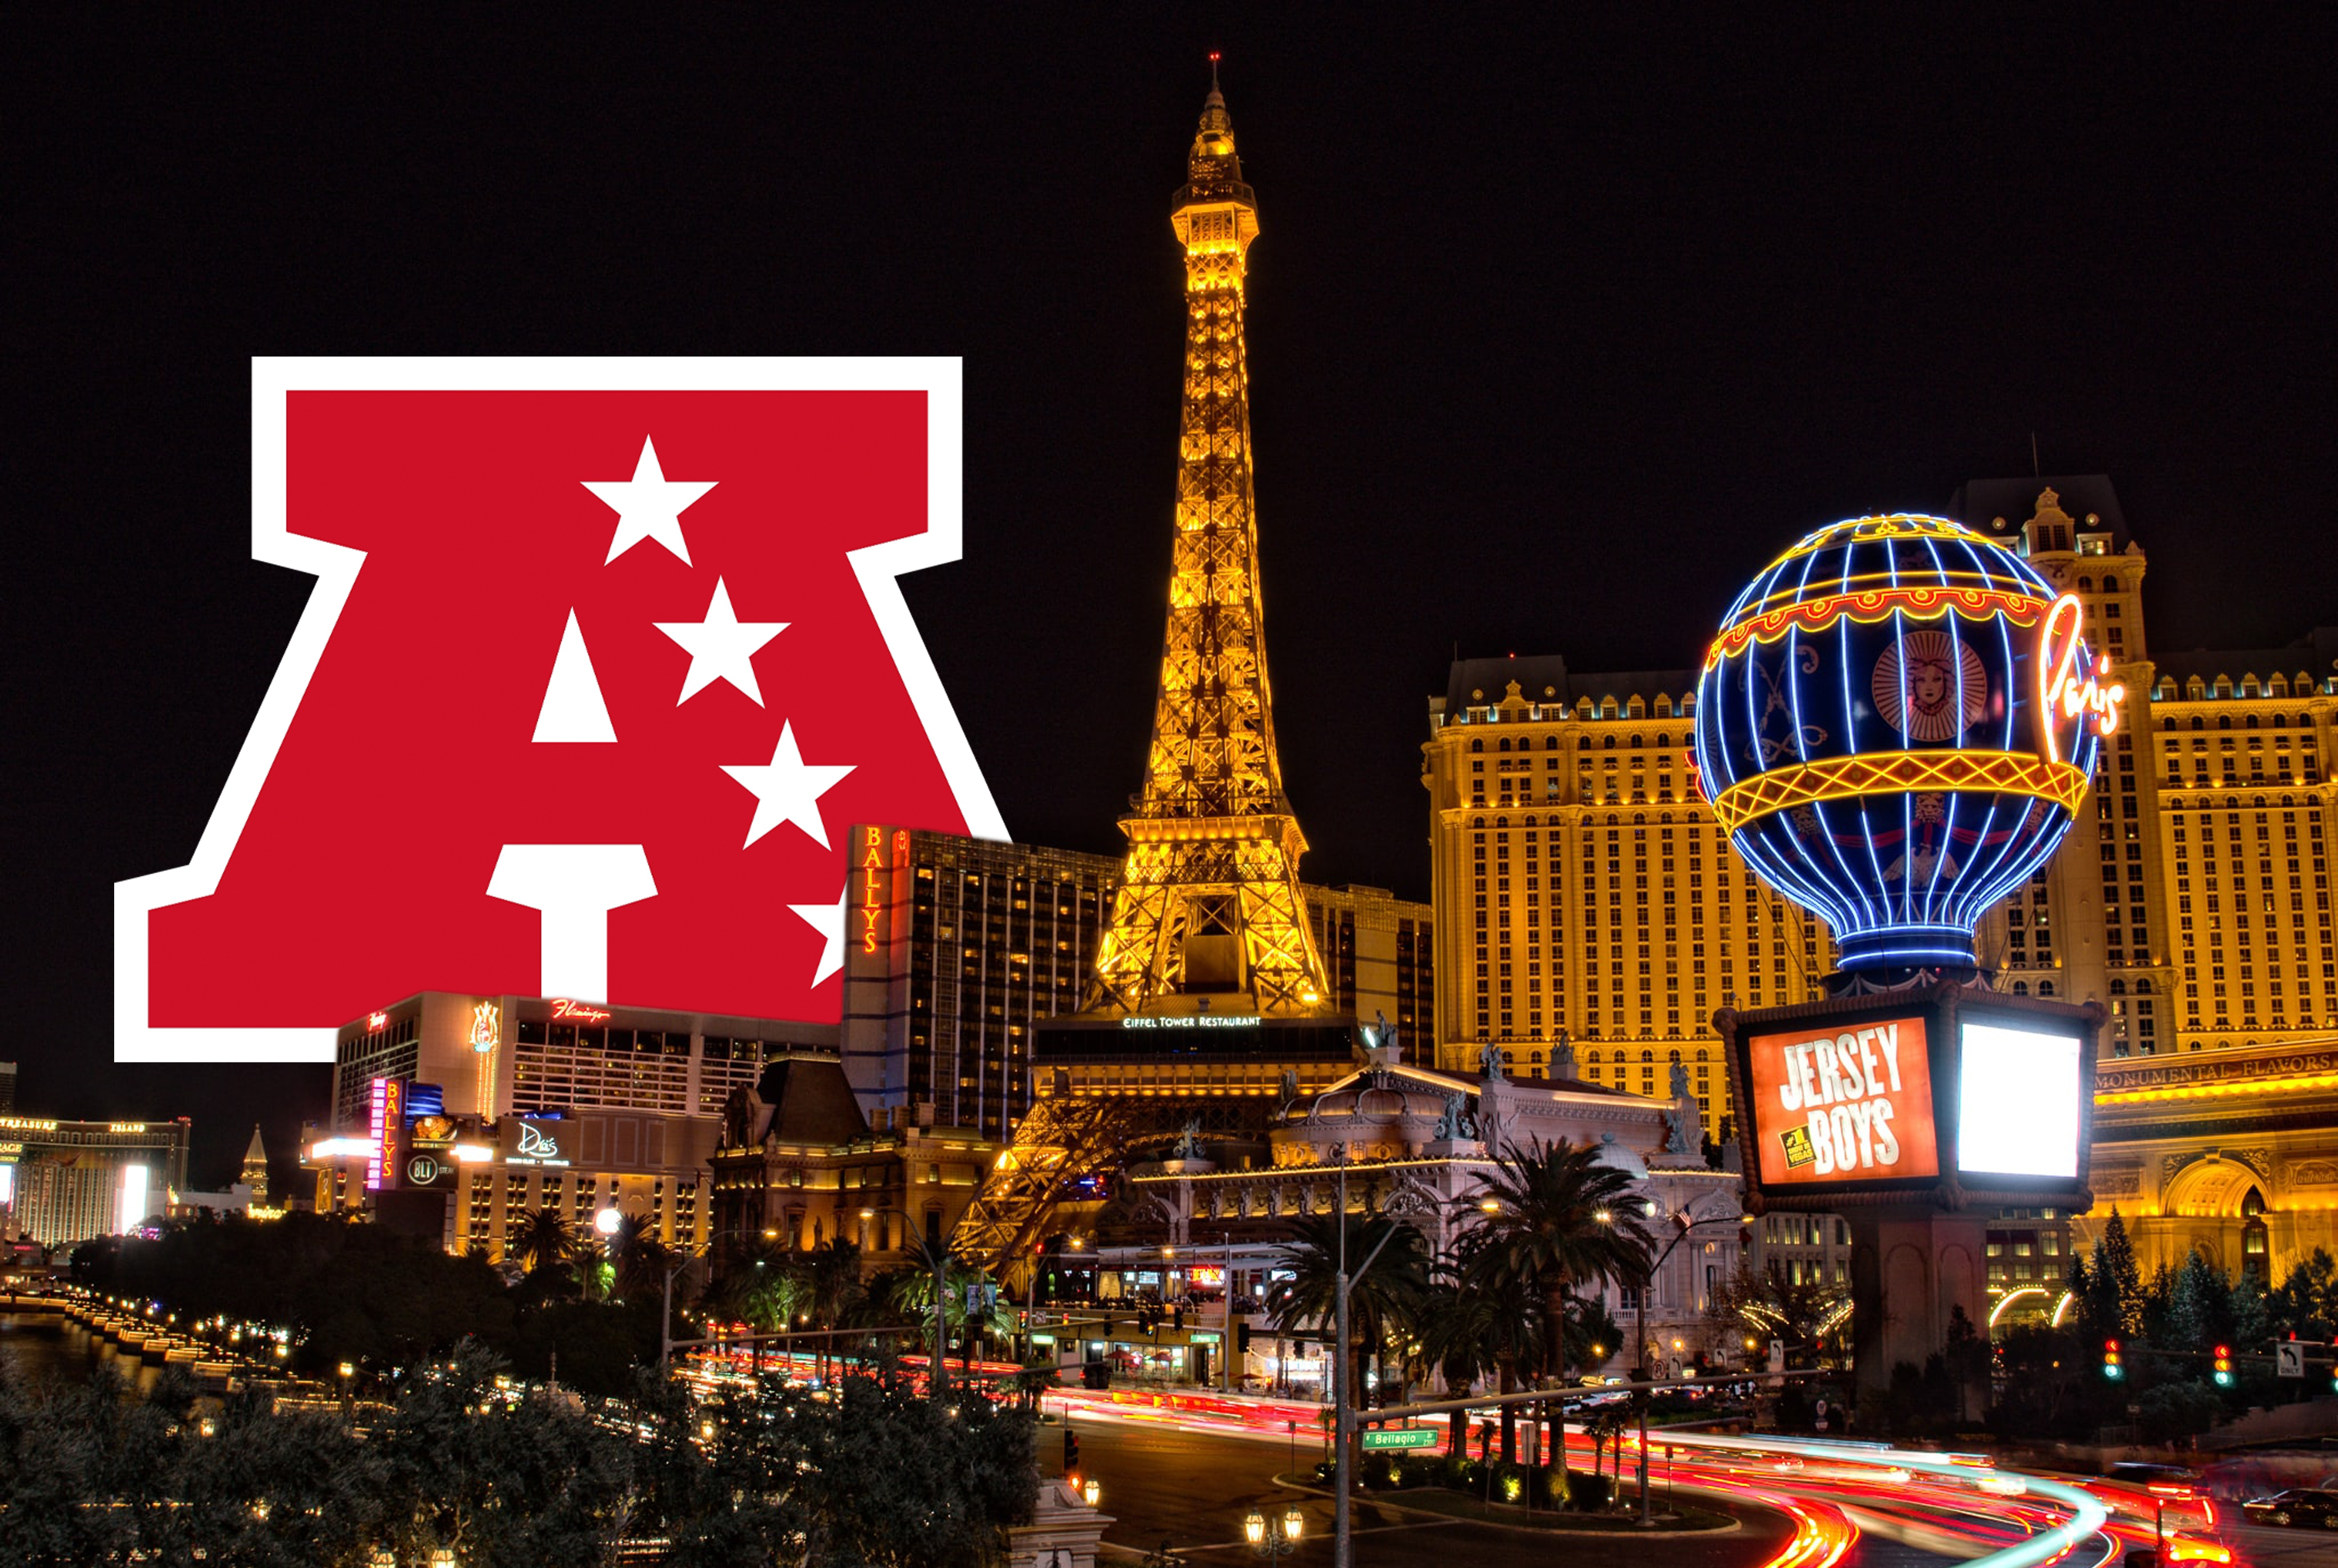 Over/Under Predictions for the AFC